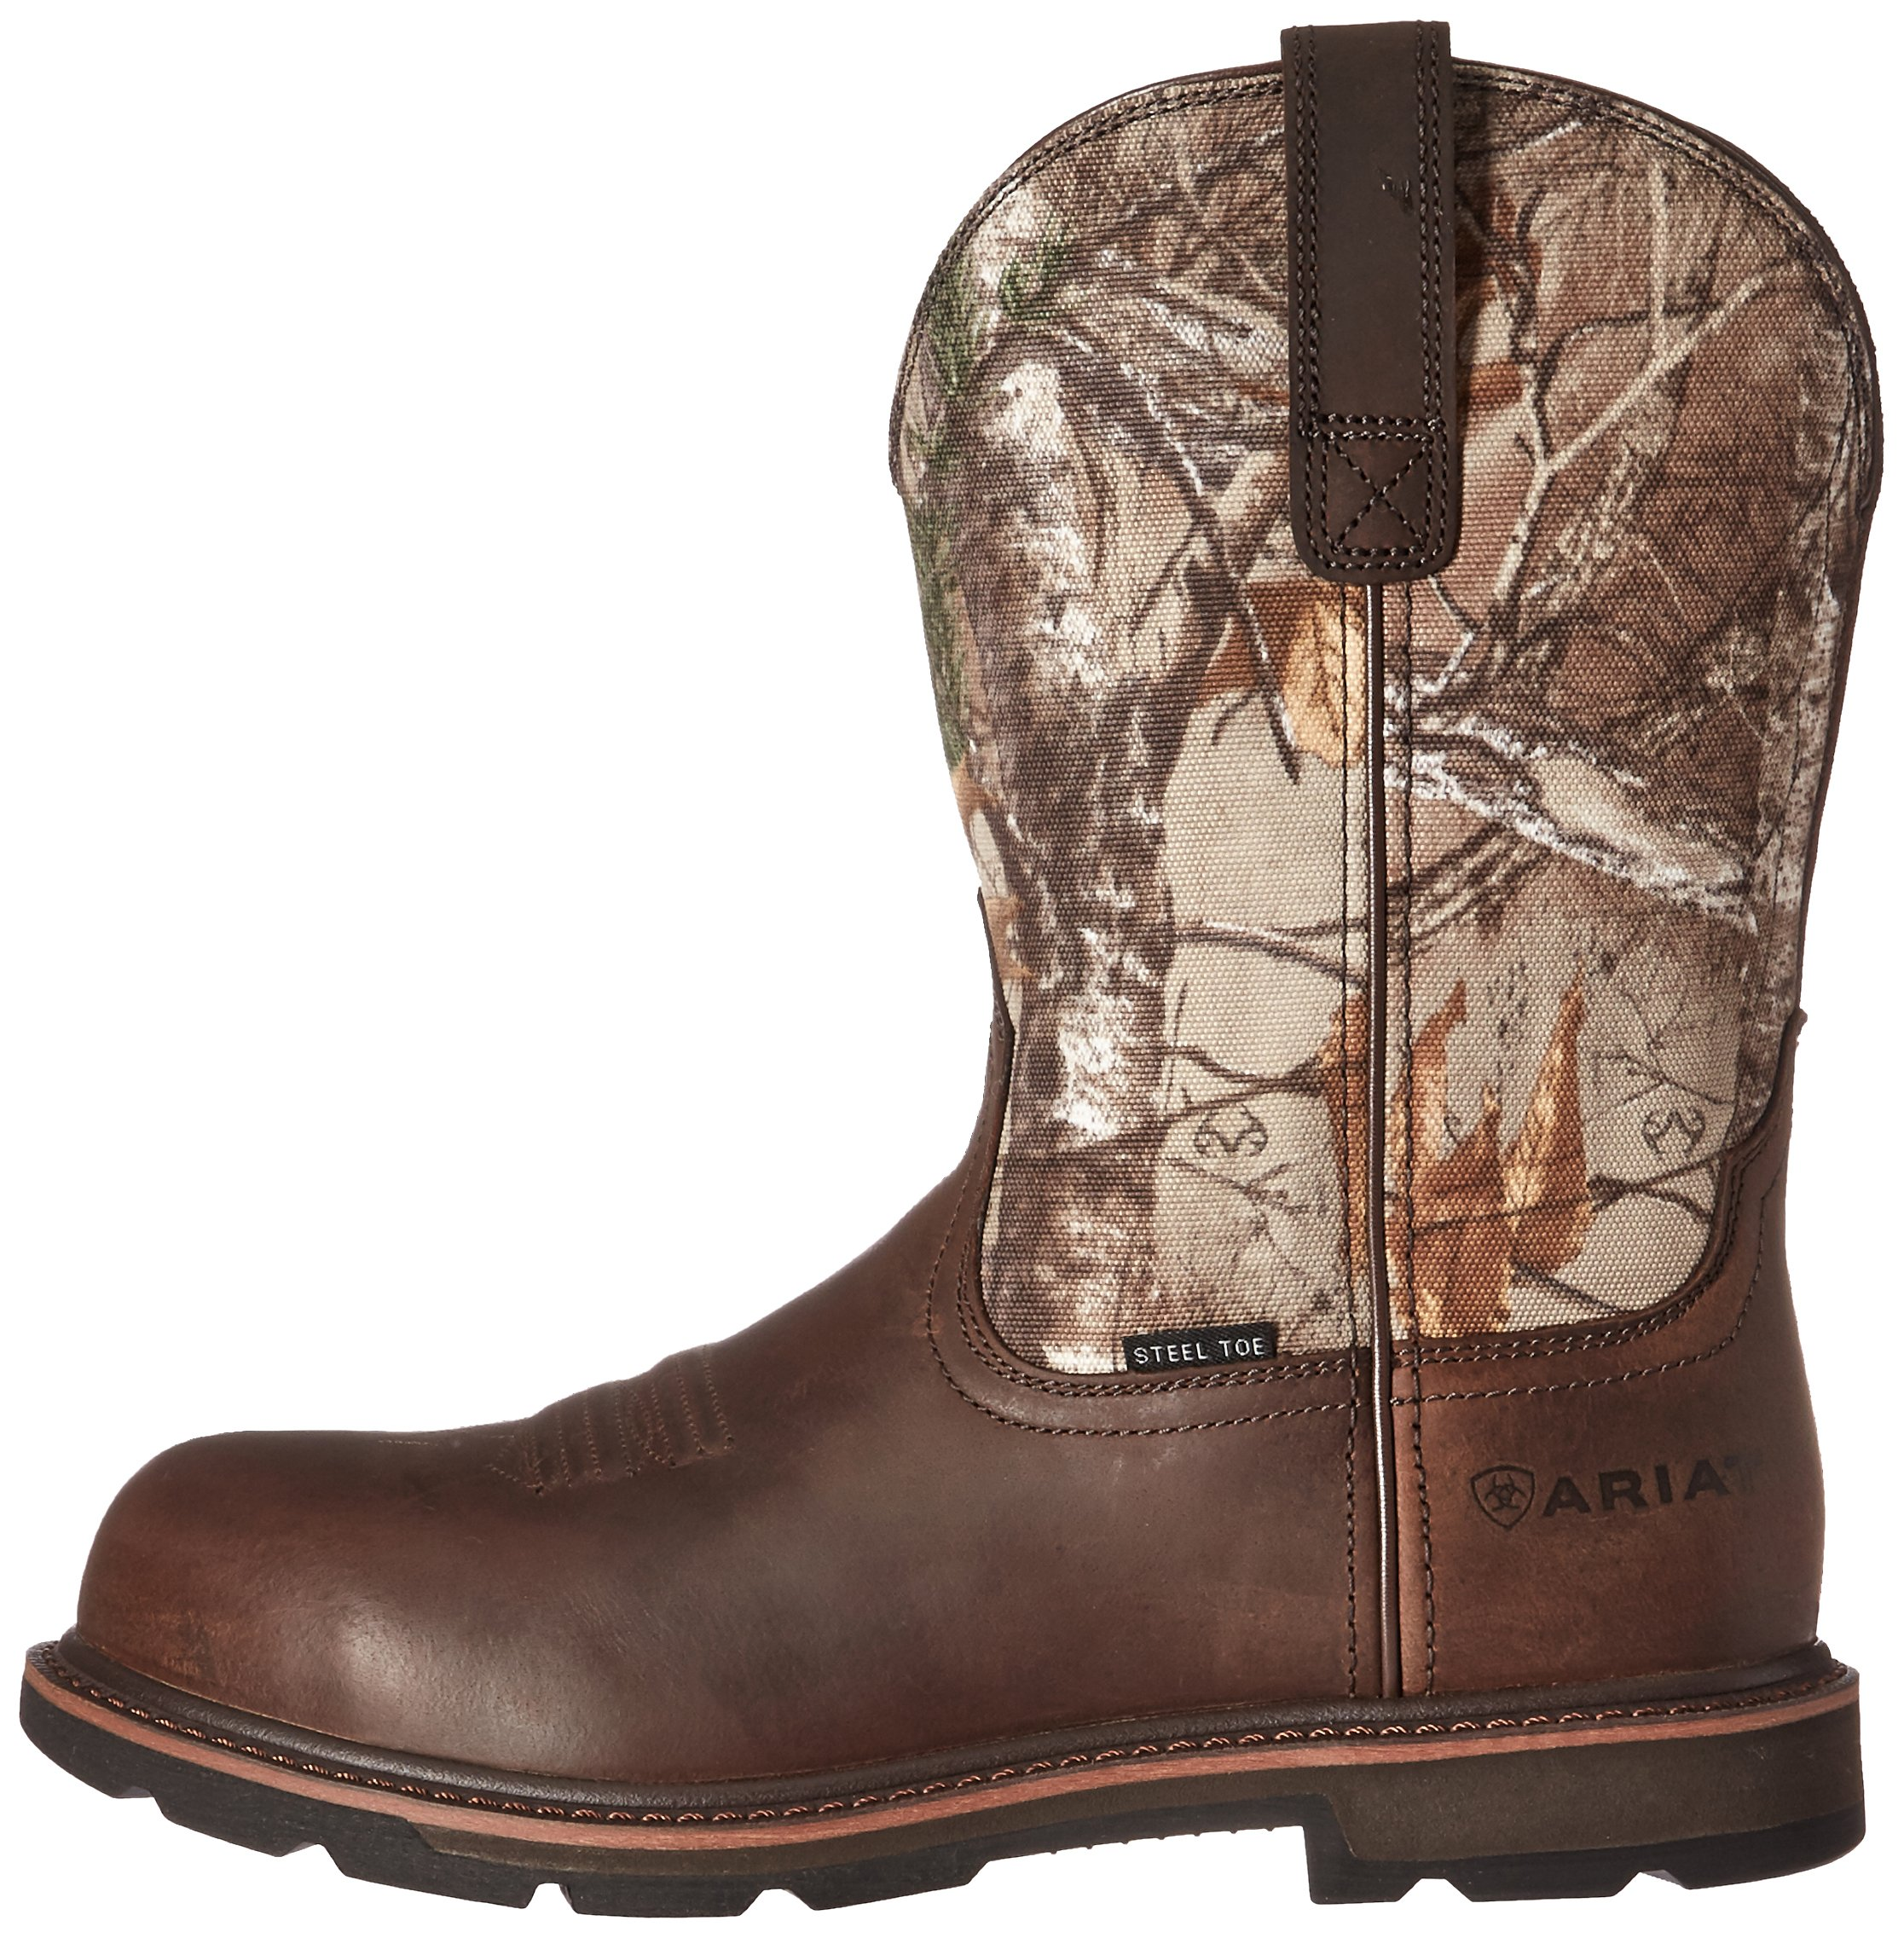 Ariat Work Men's Groundbreaker Pull-On Steel Toe Work Boot, Brown/Real Tree Extra, 7 D US by Ariat (Image #5)